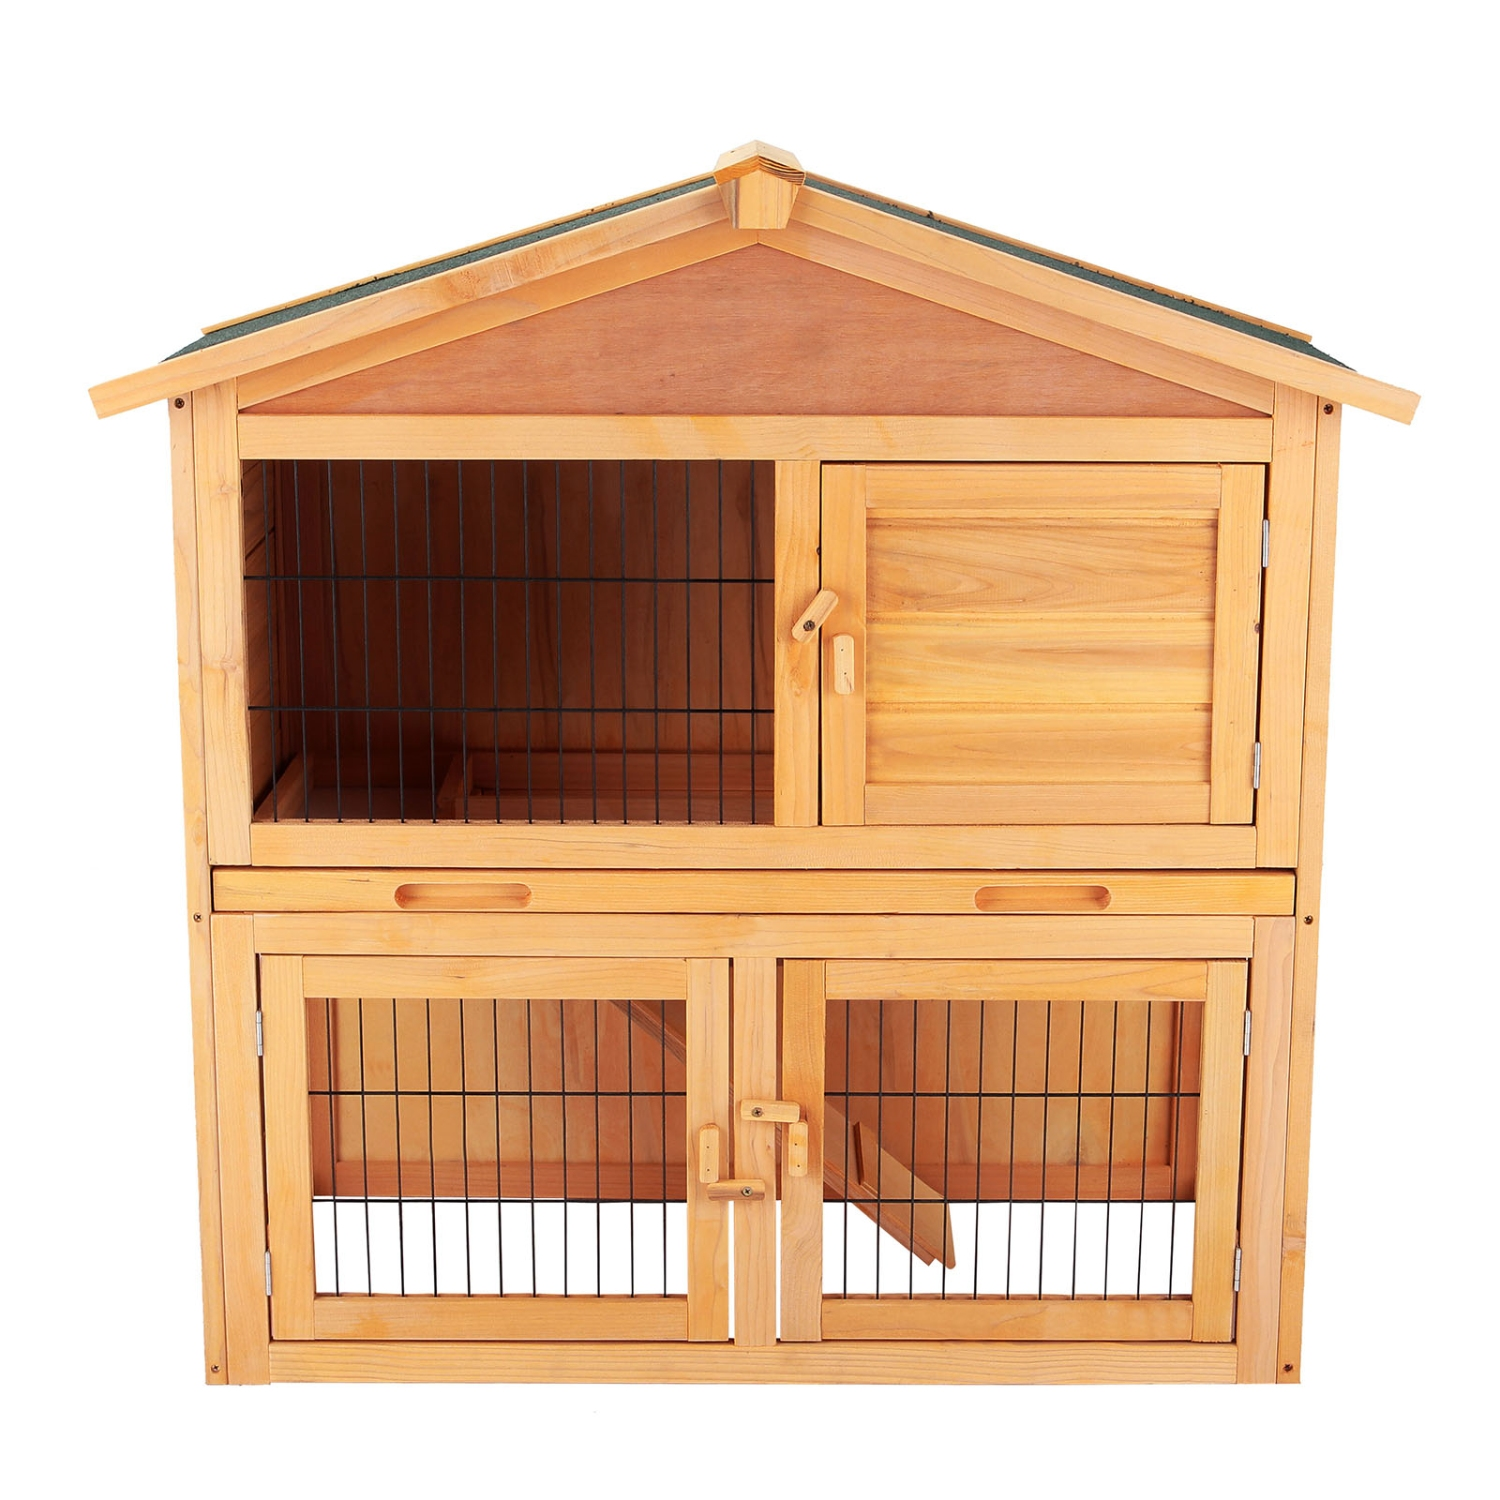 40 wooden cage chicken coop rabbit hutch hen house